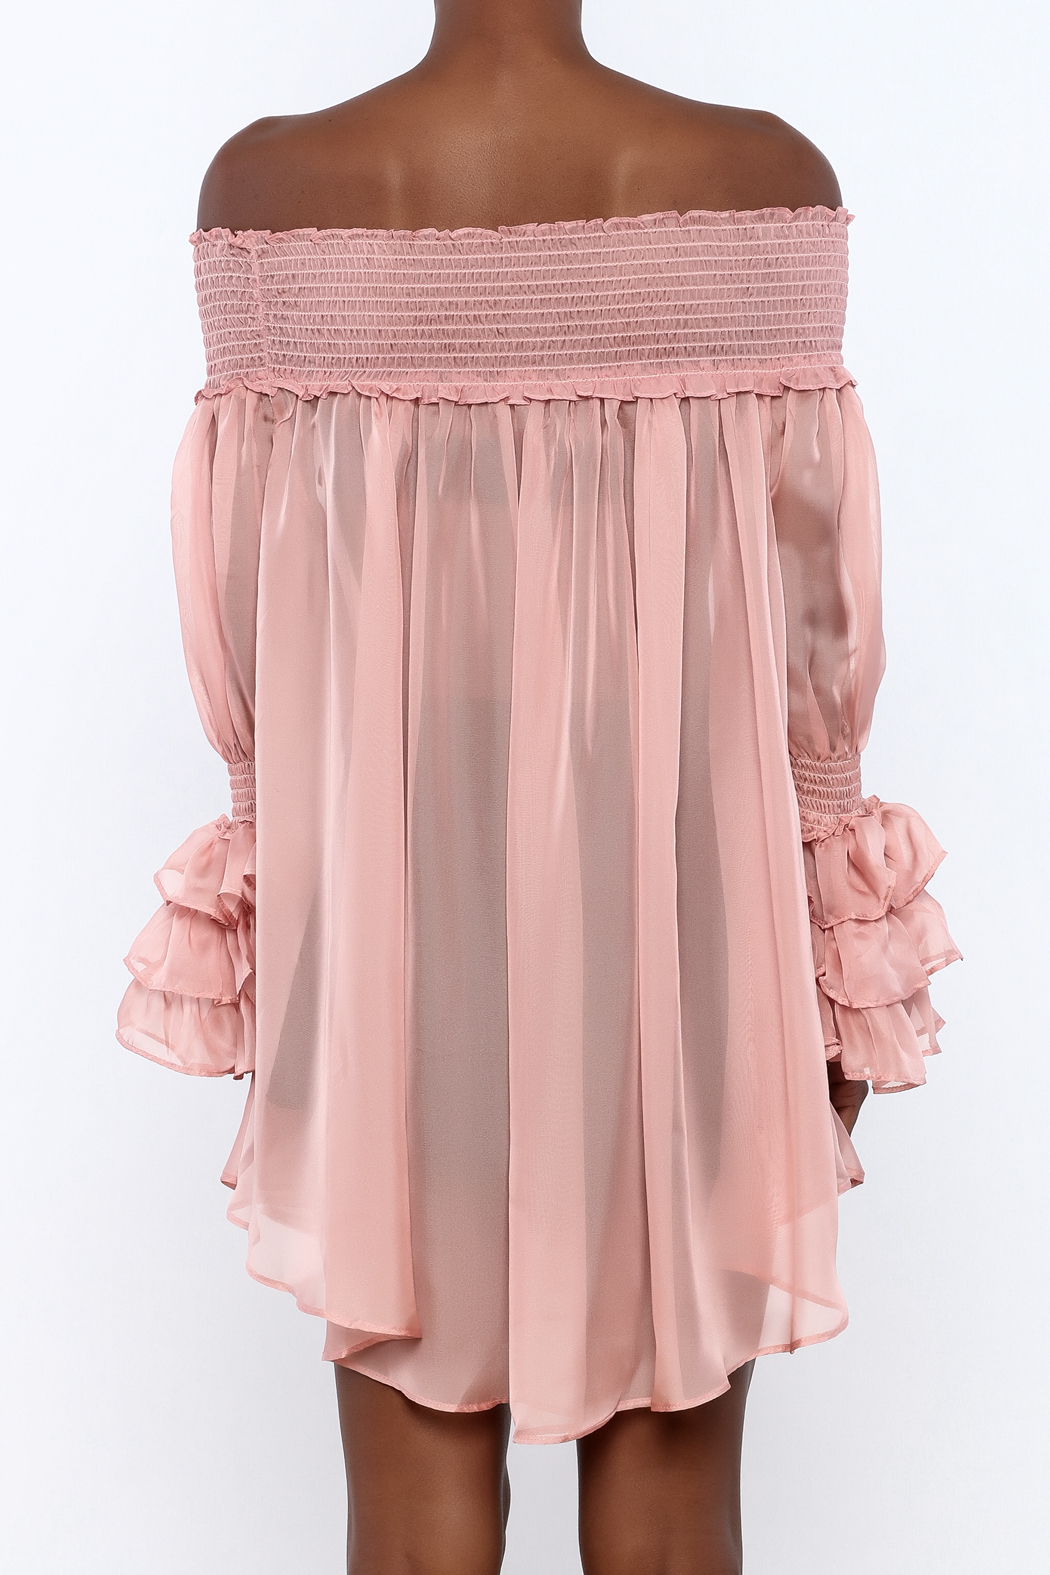 cq by cq Sheer Off Shoulder Top - Back Cropped Image